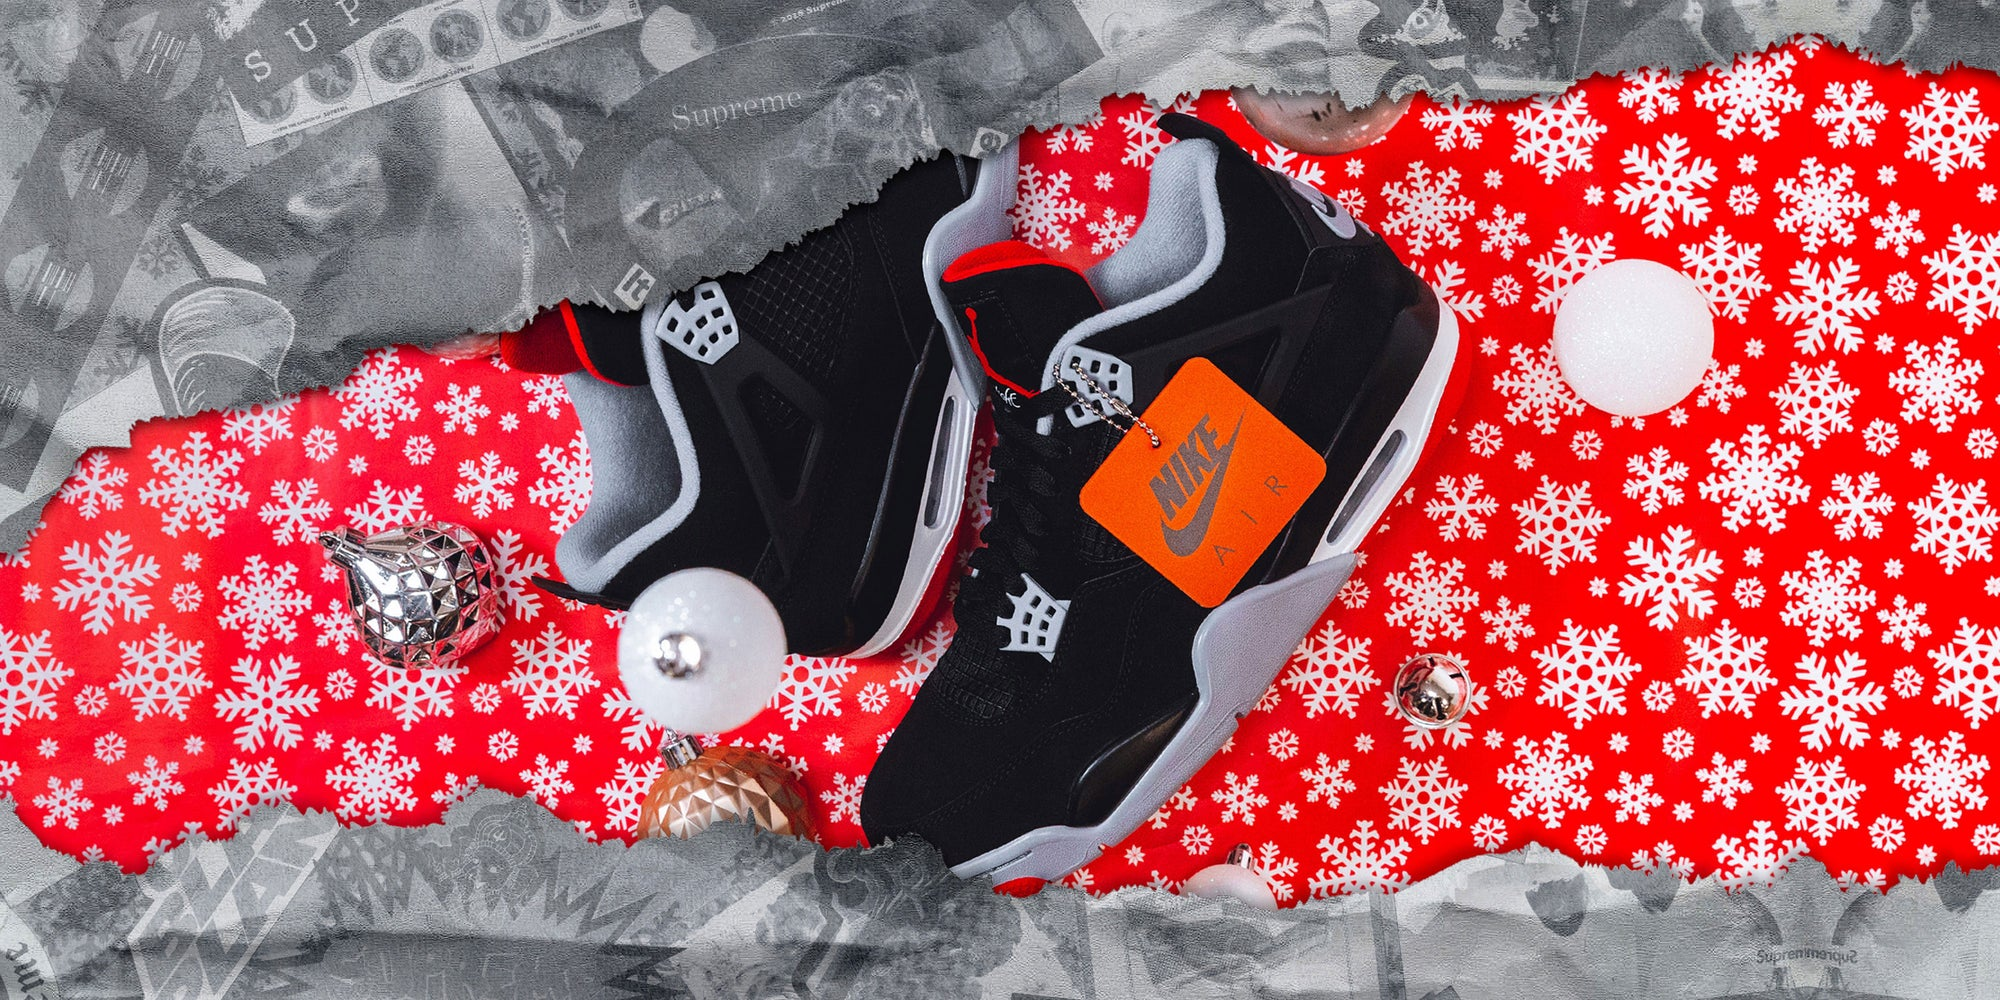 STAY FRESH's Holiday Gift Guide 2019